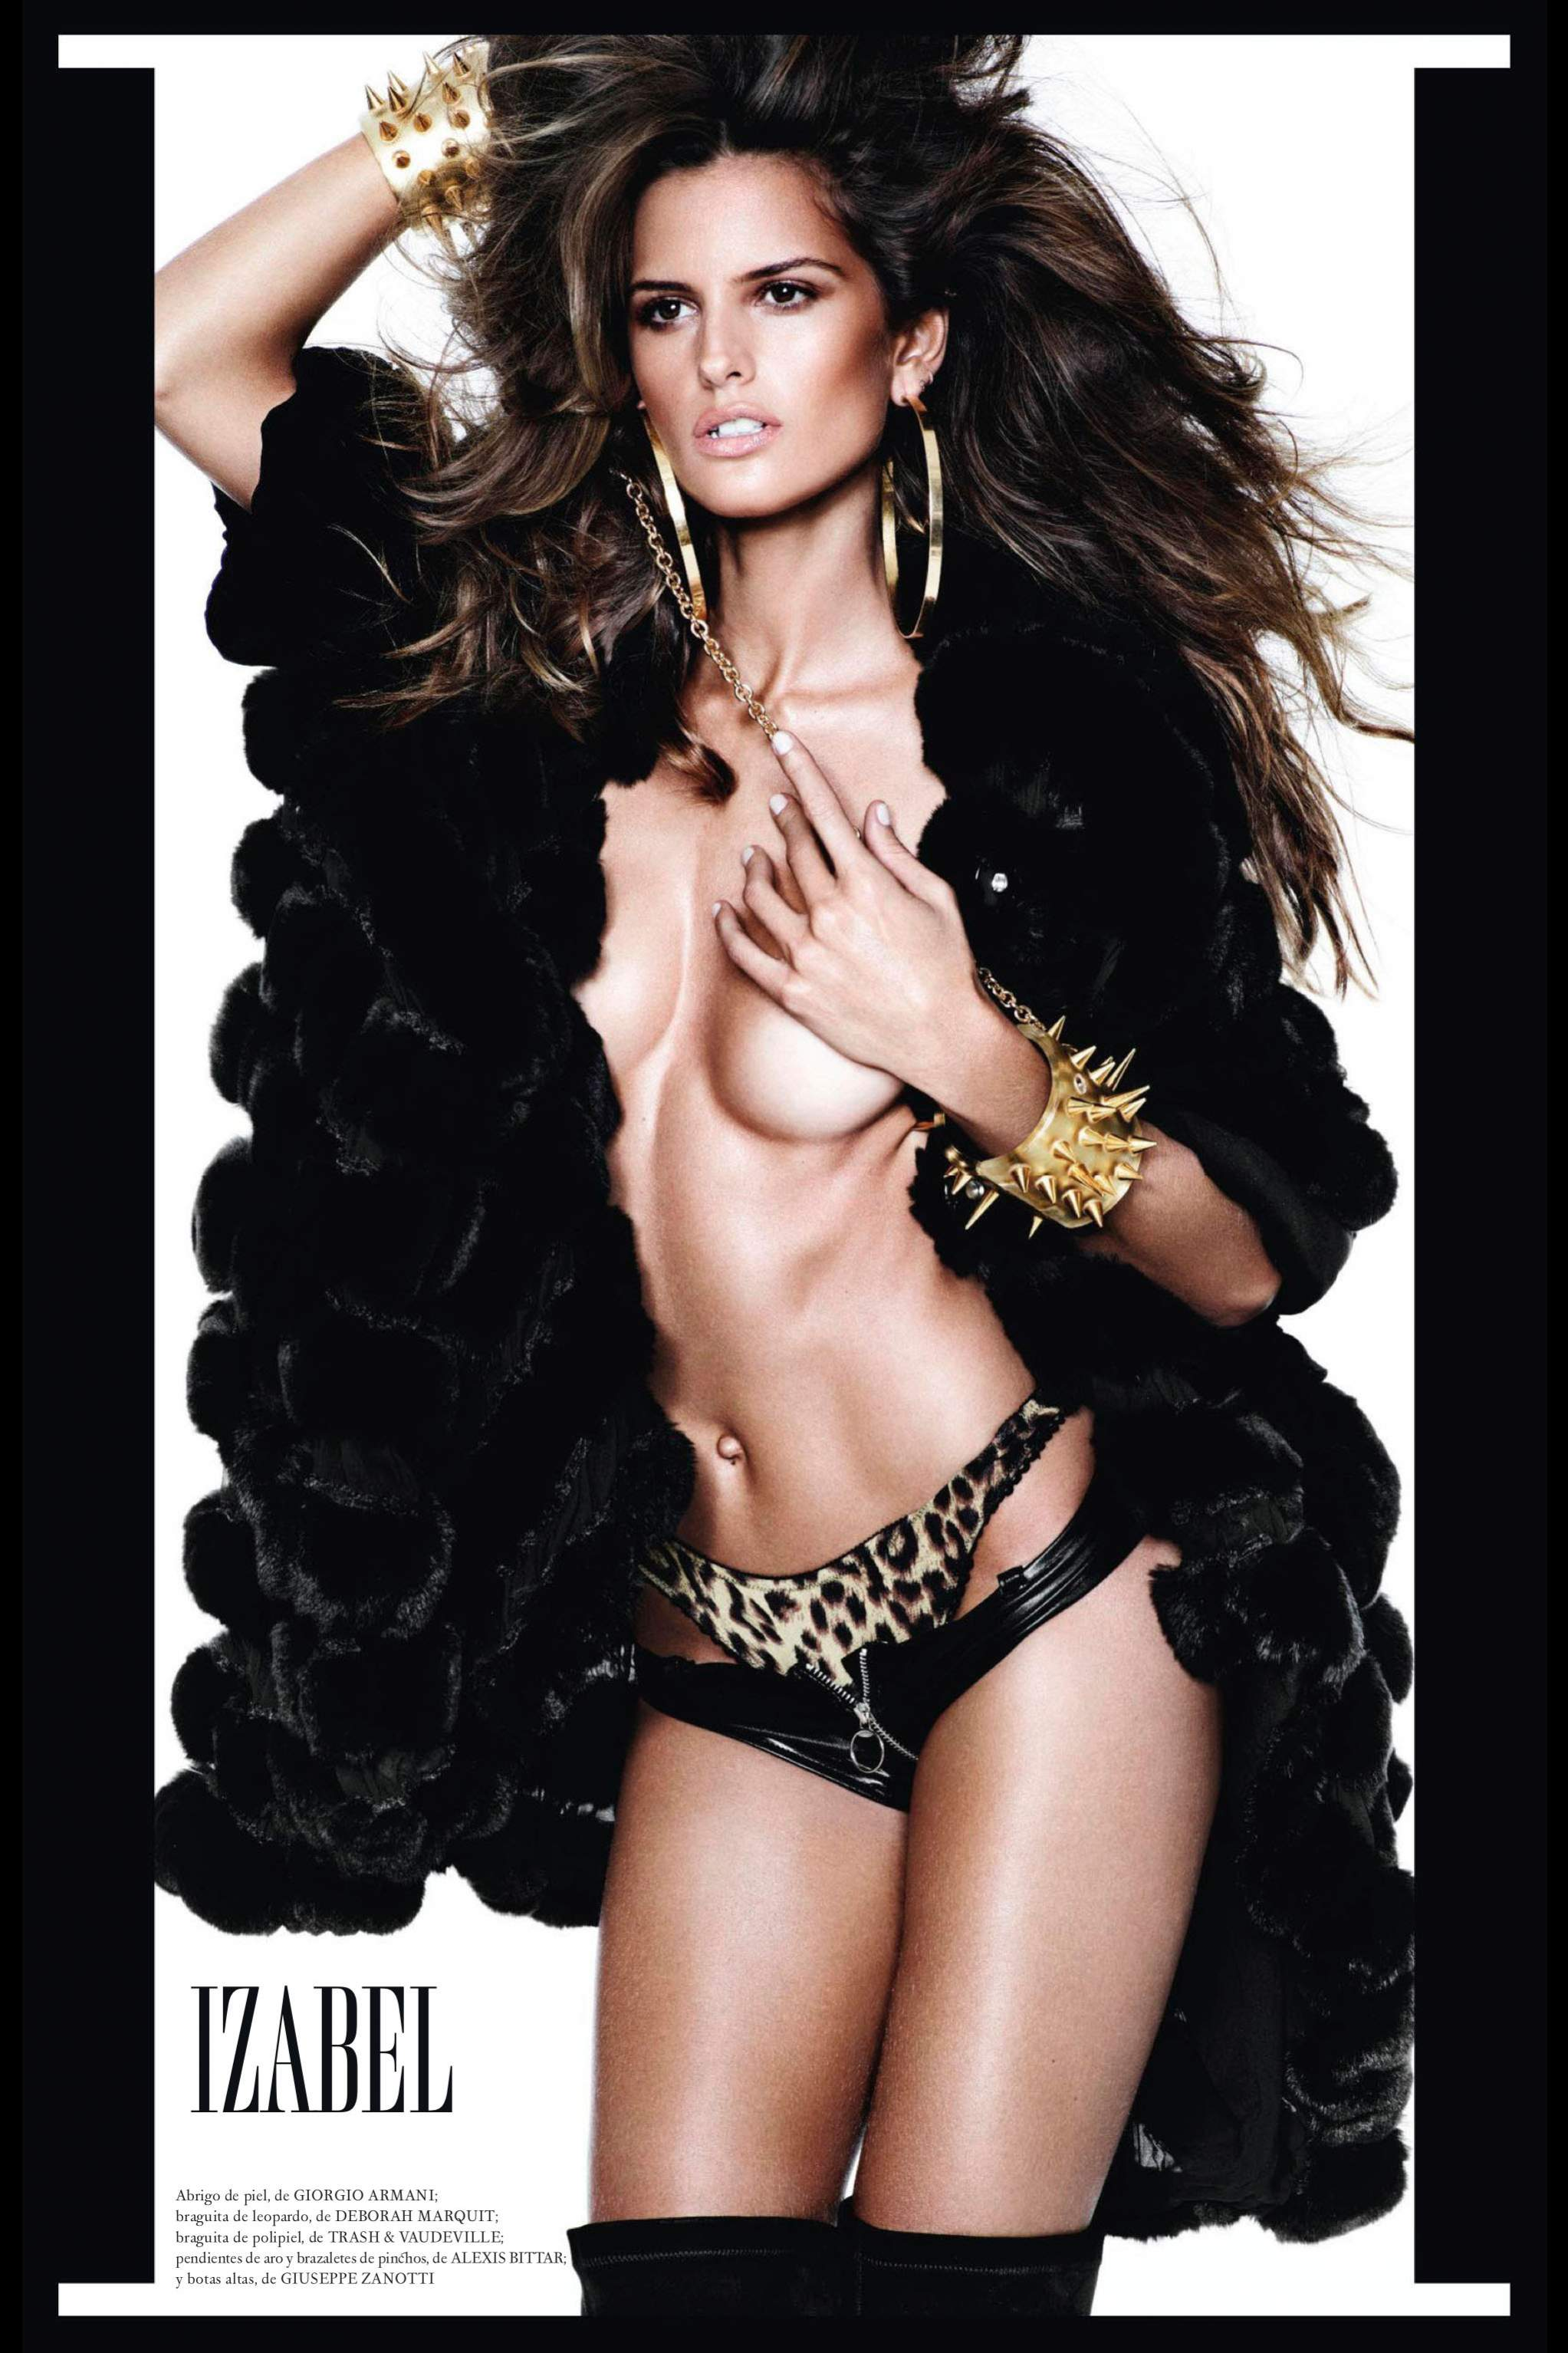 Izabel Gouart in black lingerie and fur coat with no bra on